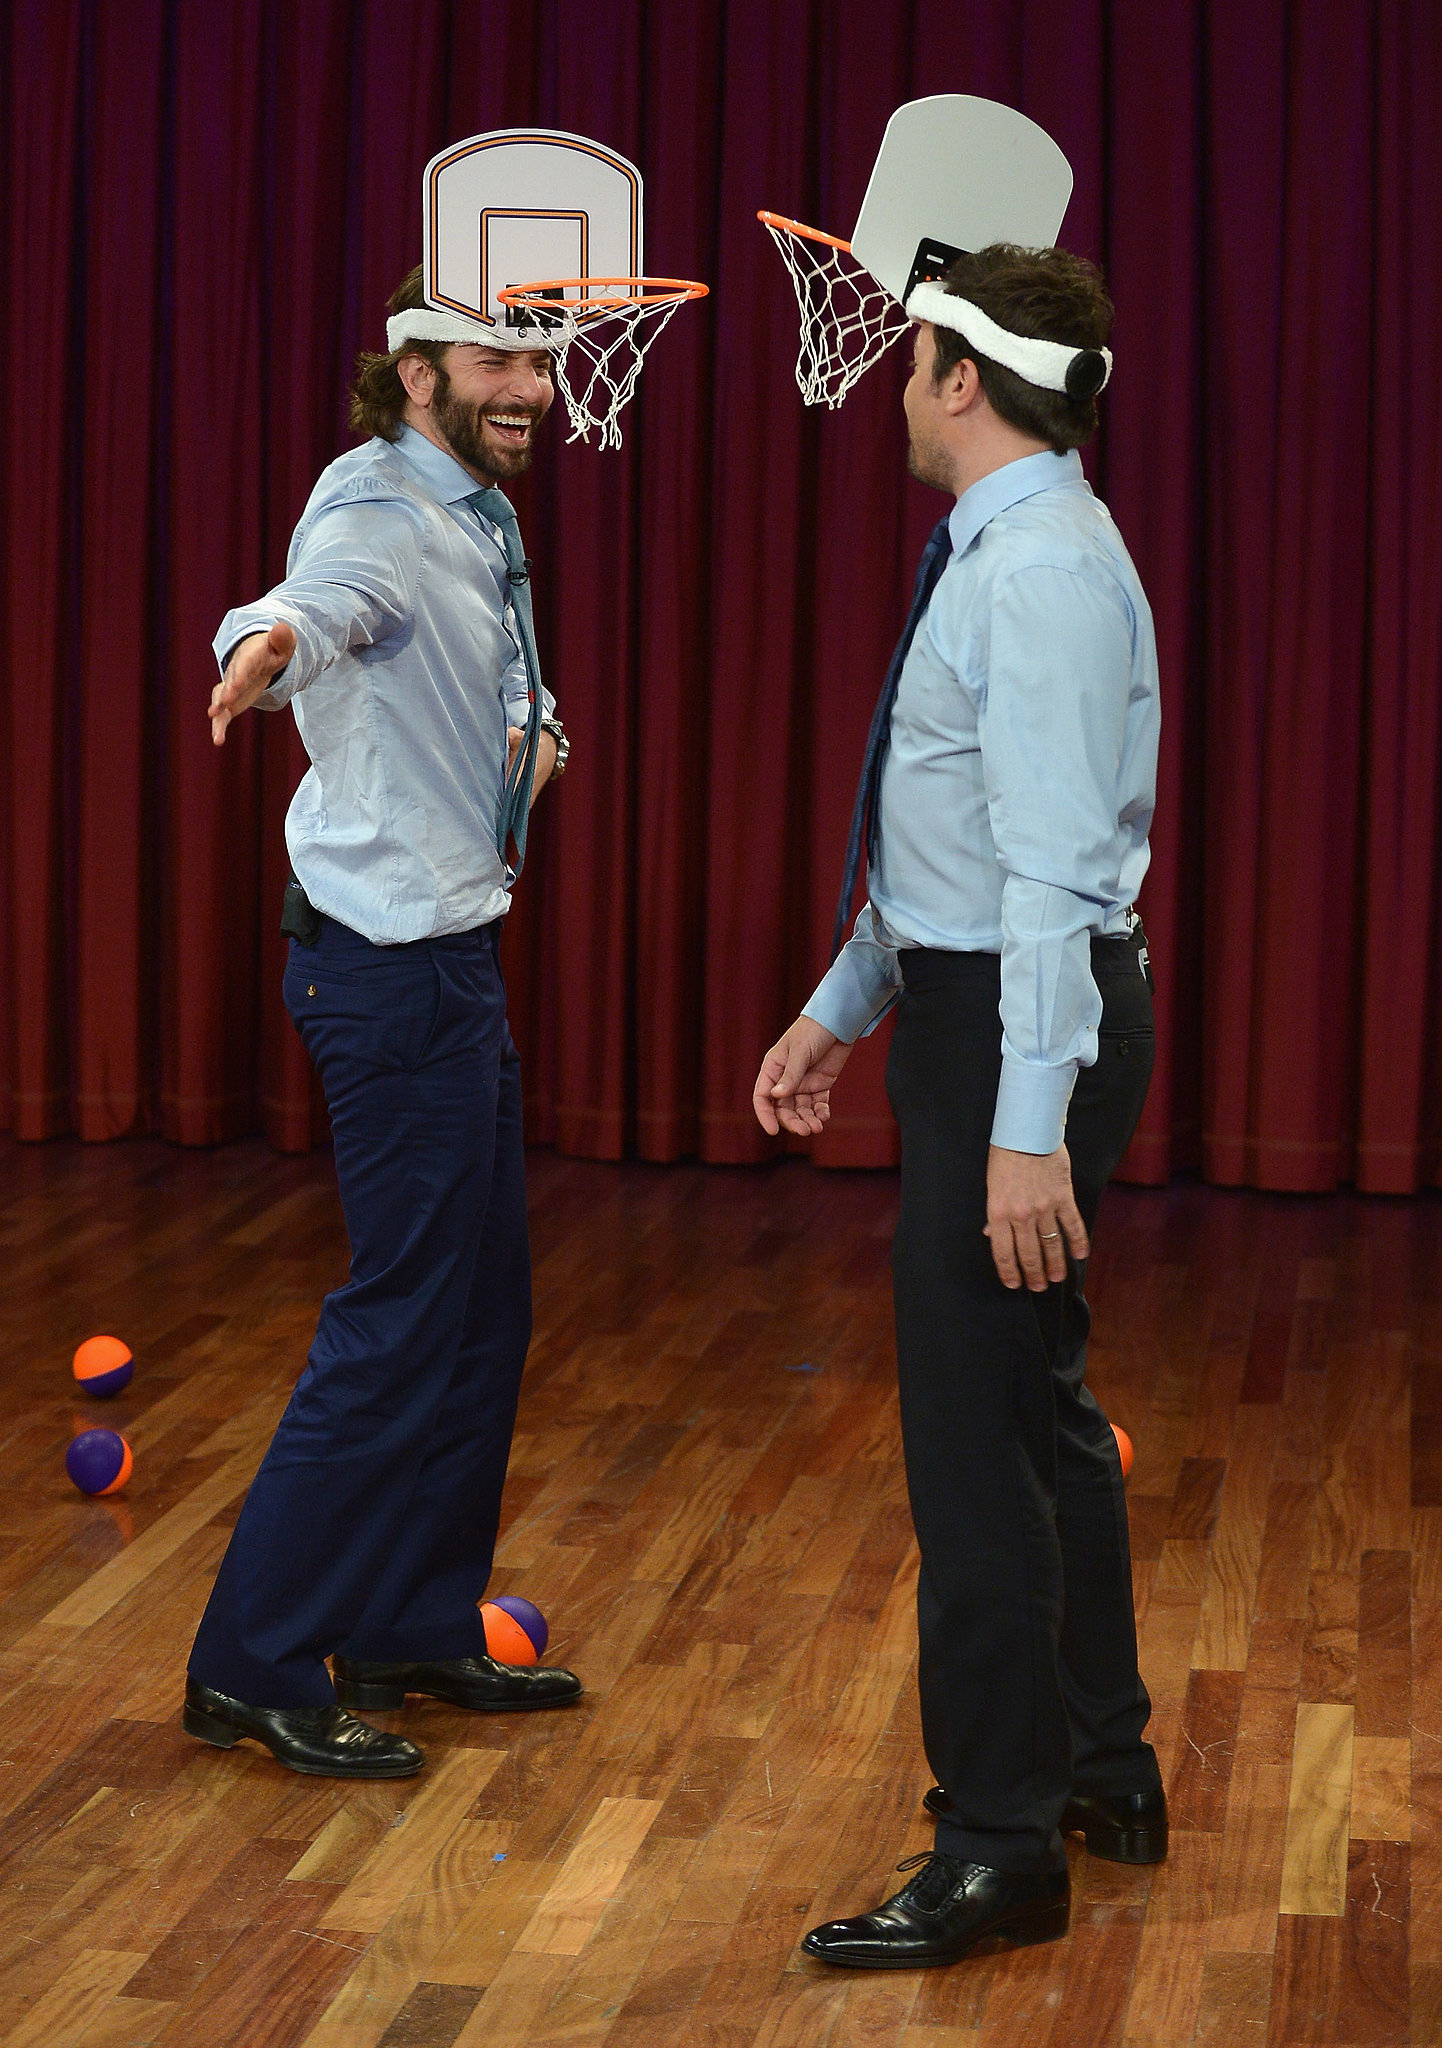 Bradley Cooper Faces Off With Jimmy Fallon